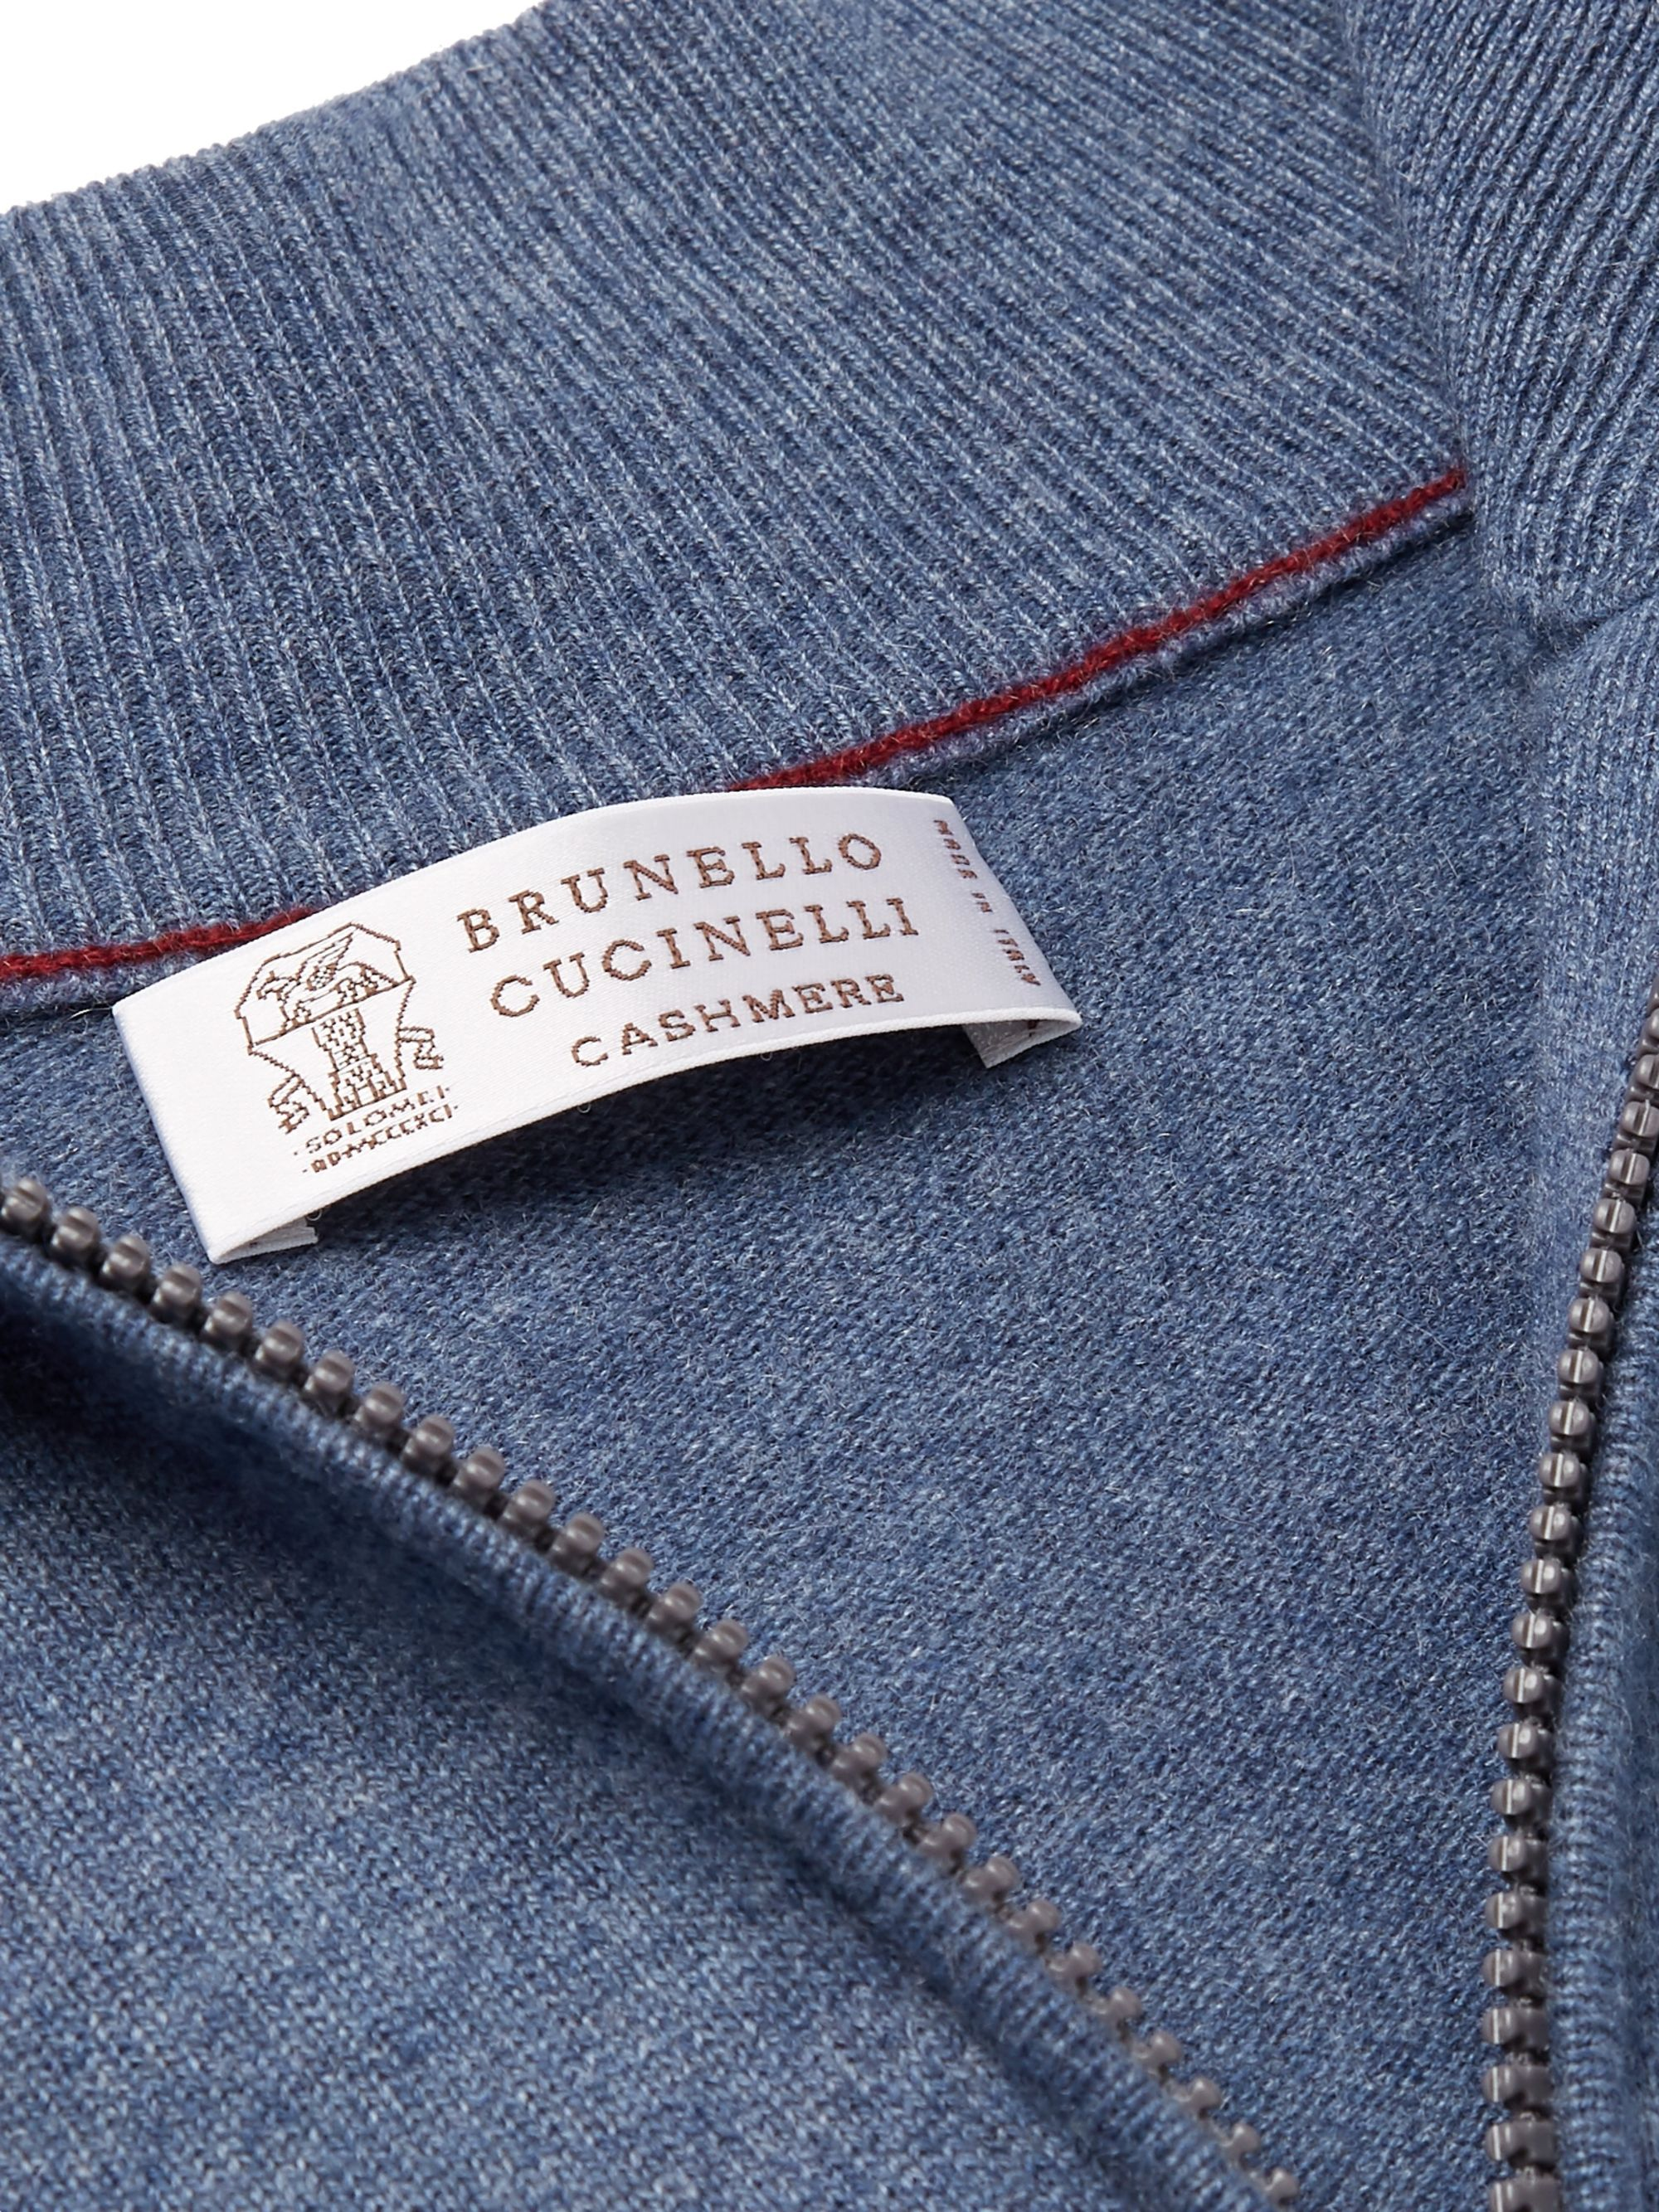 Brunello Cucinelli Cashmere Half-Zip Sweater